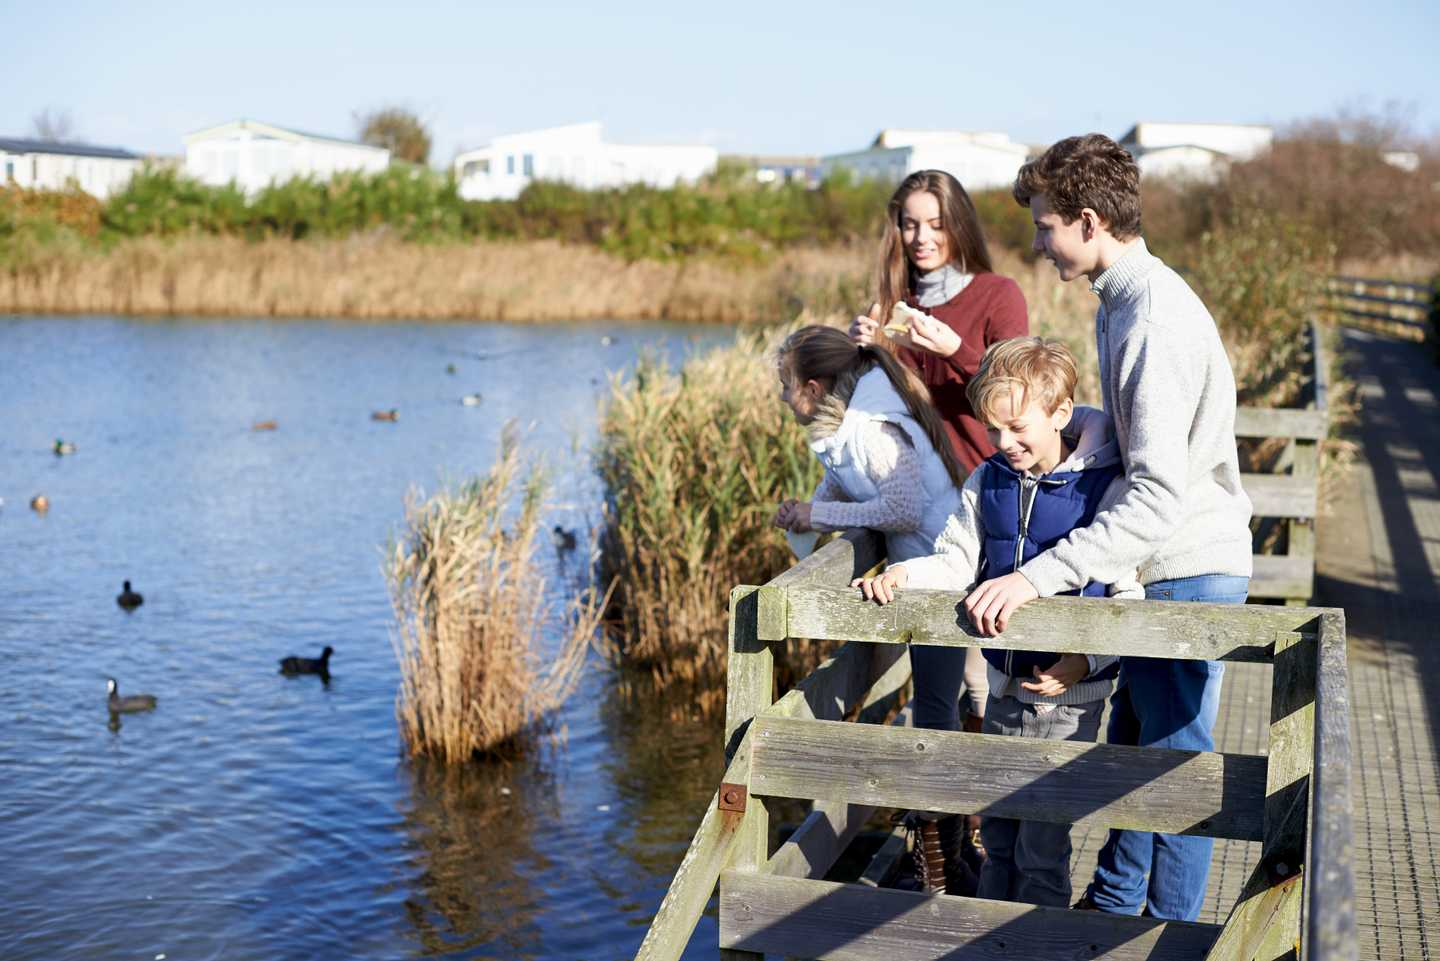 A family looking out over the lagoon, which is part of the nature reserve at Church Farm, watching the ducks